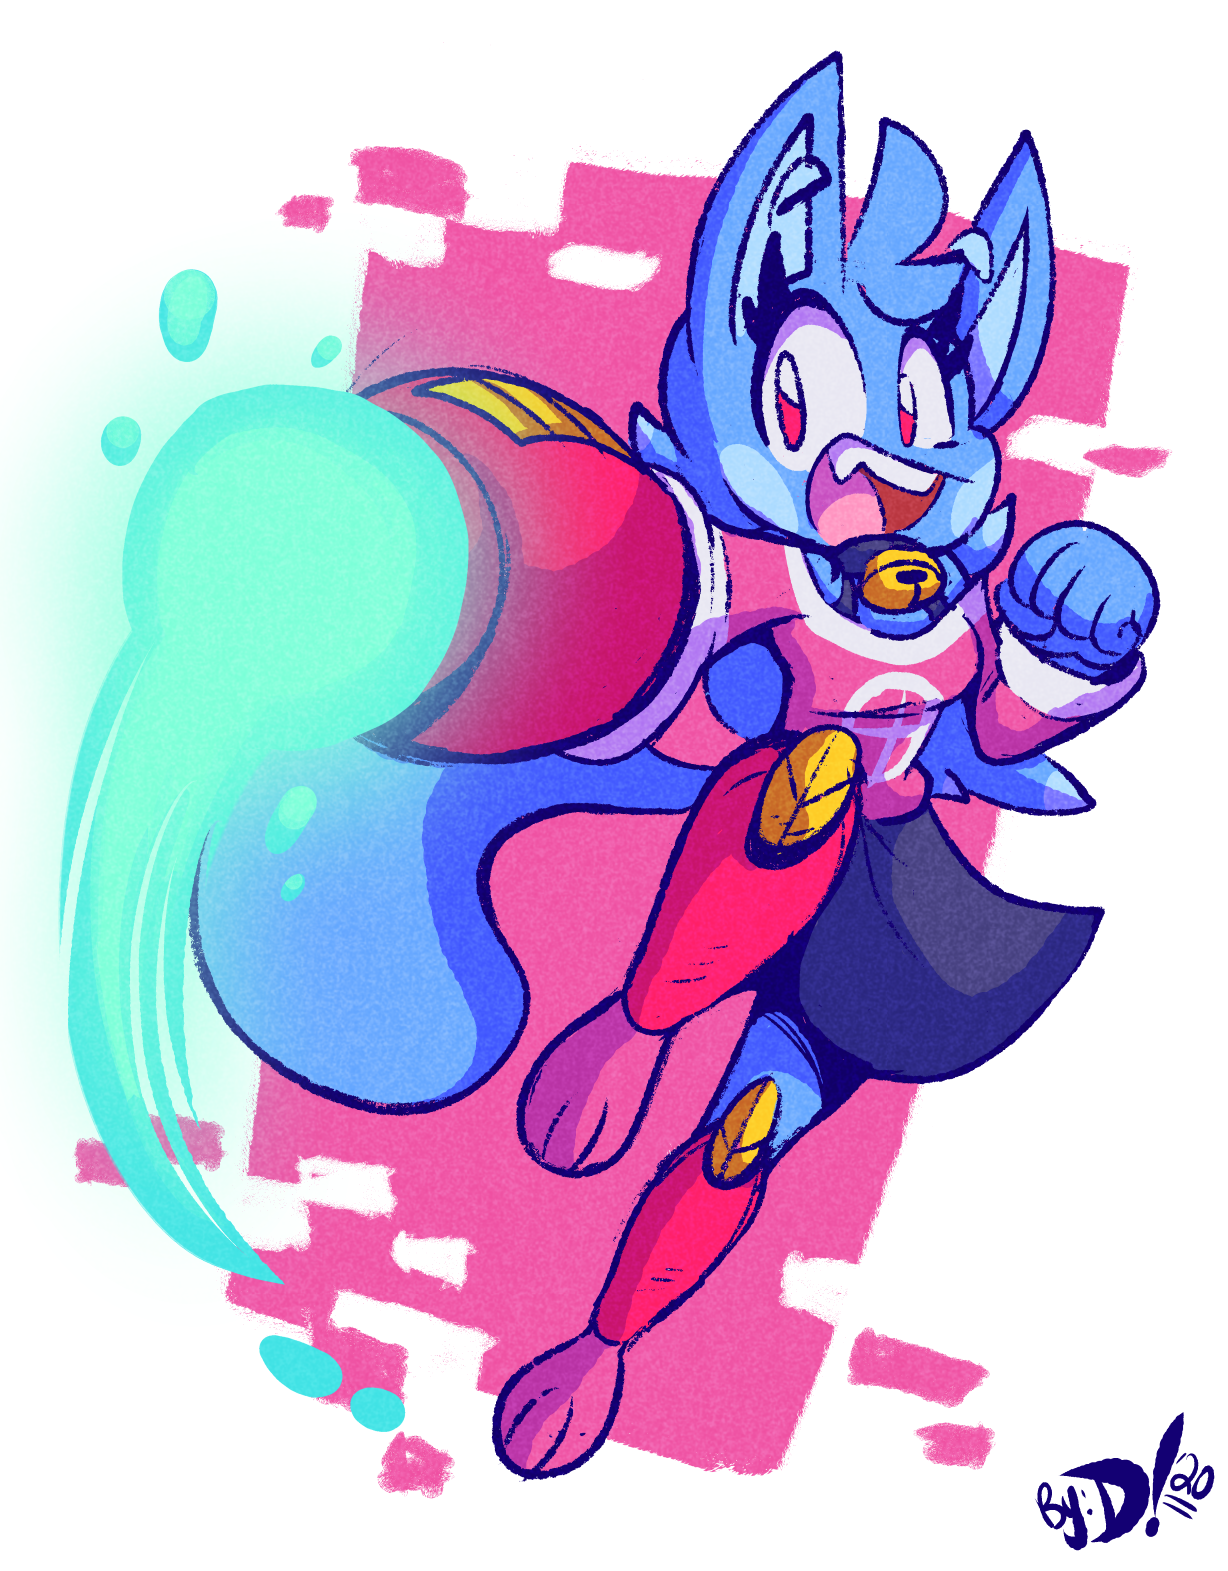 Pixel Charges up!